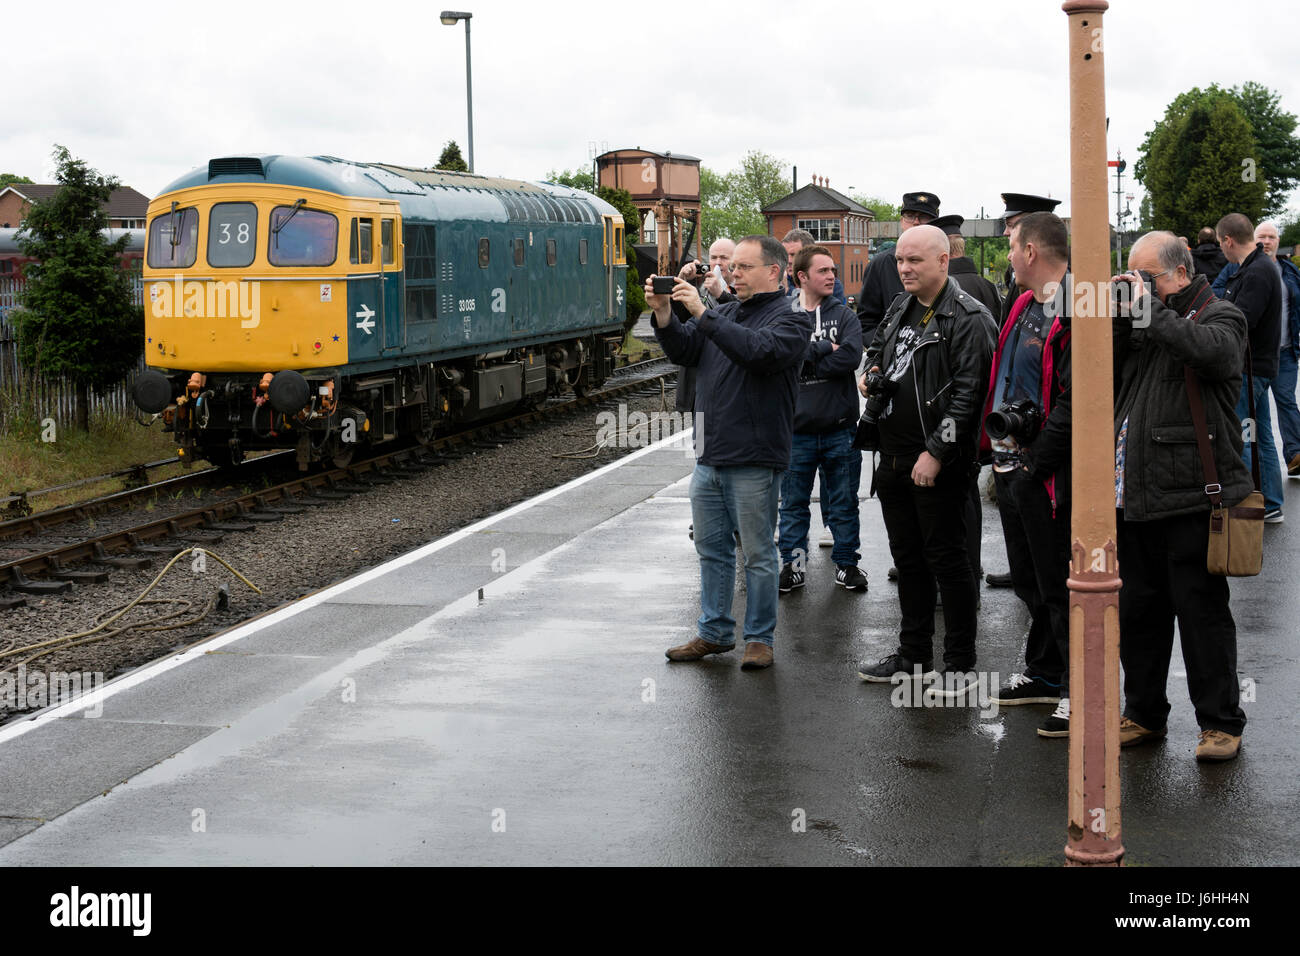 Rail enthusiasts at the Severn Valley Railway Spring Diesel Festival, Kidderminster, UK - Stock Image